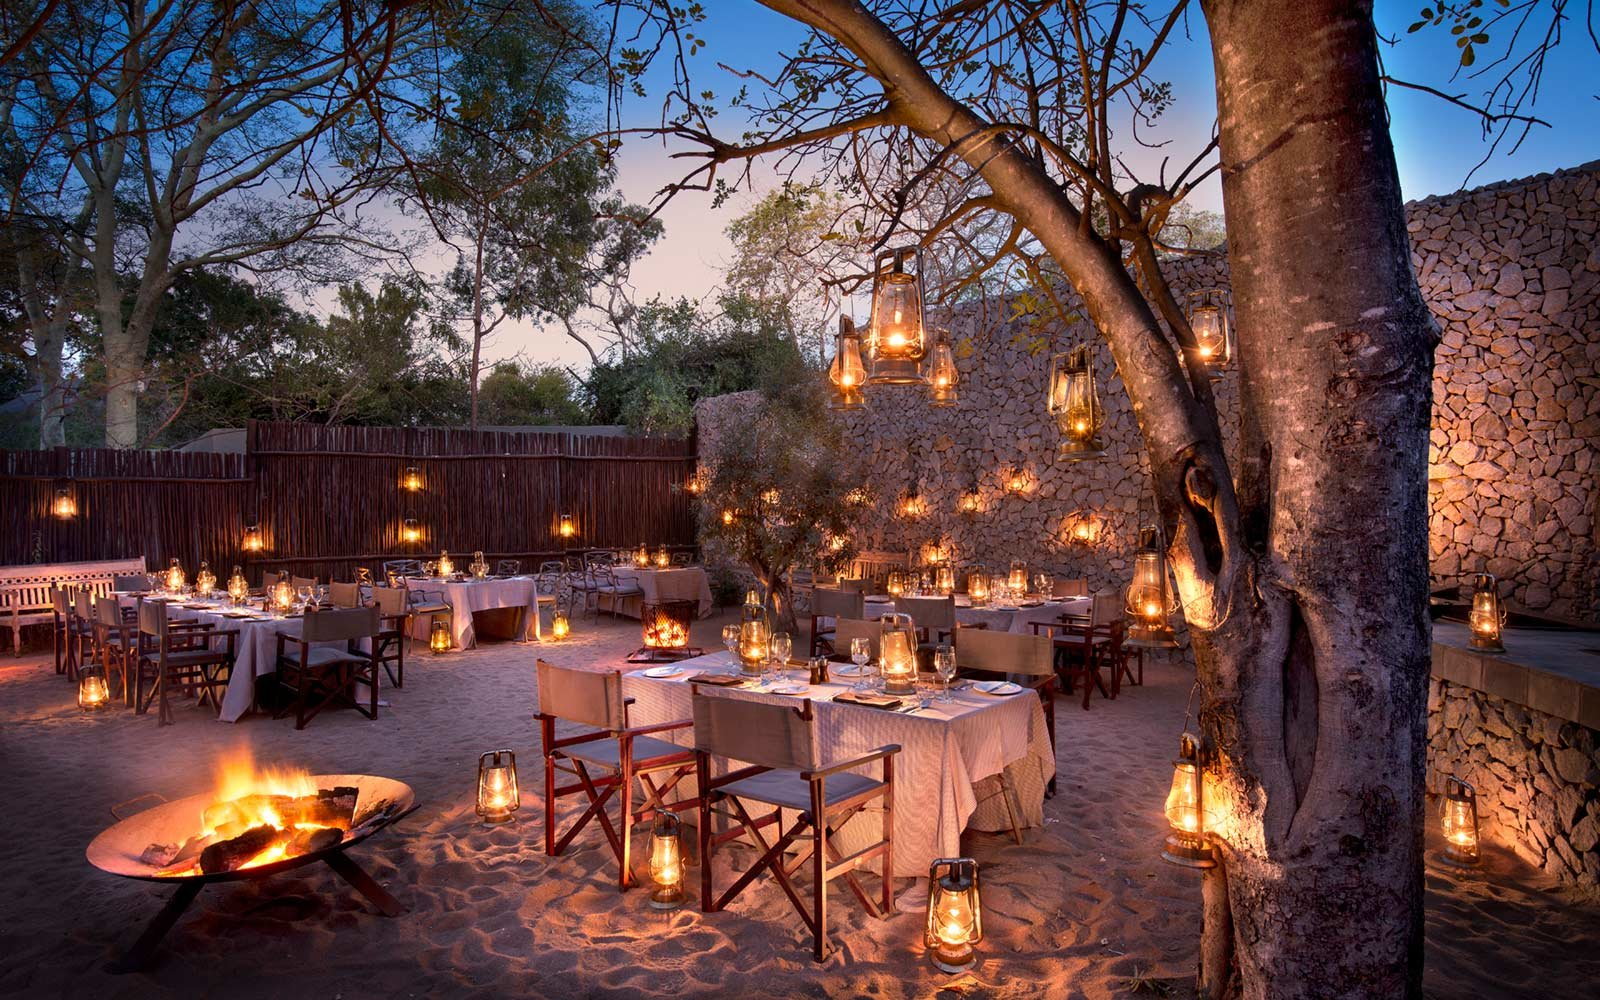 5. andBeyond Ngala Safari Lodge, Kruger National Park, South Africa